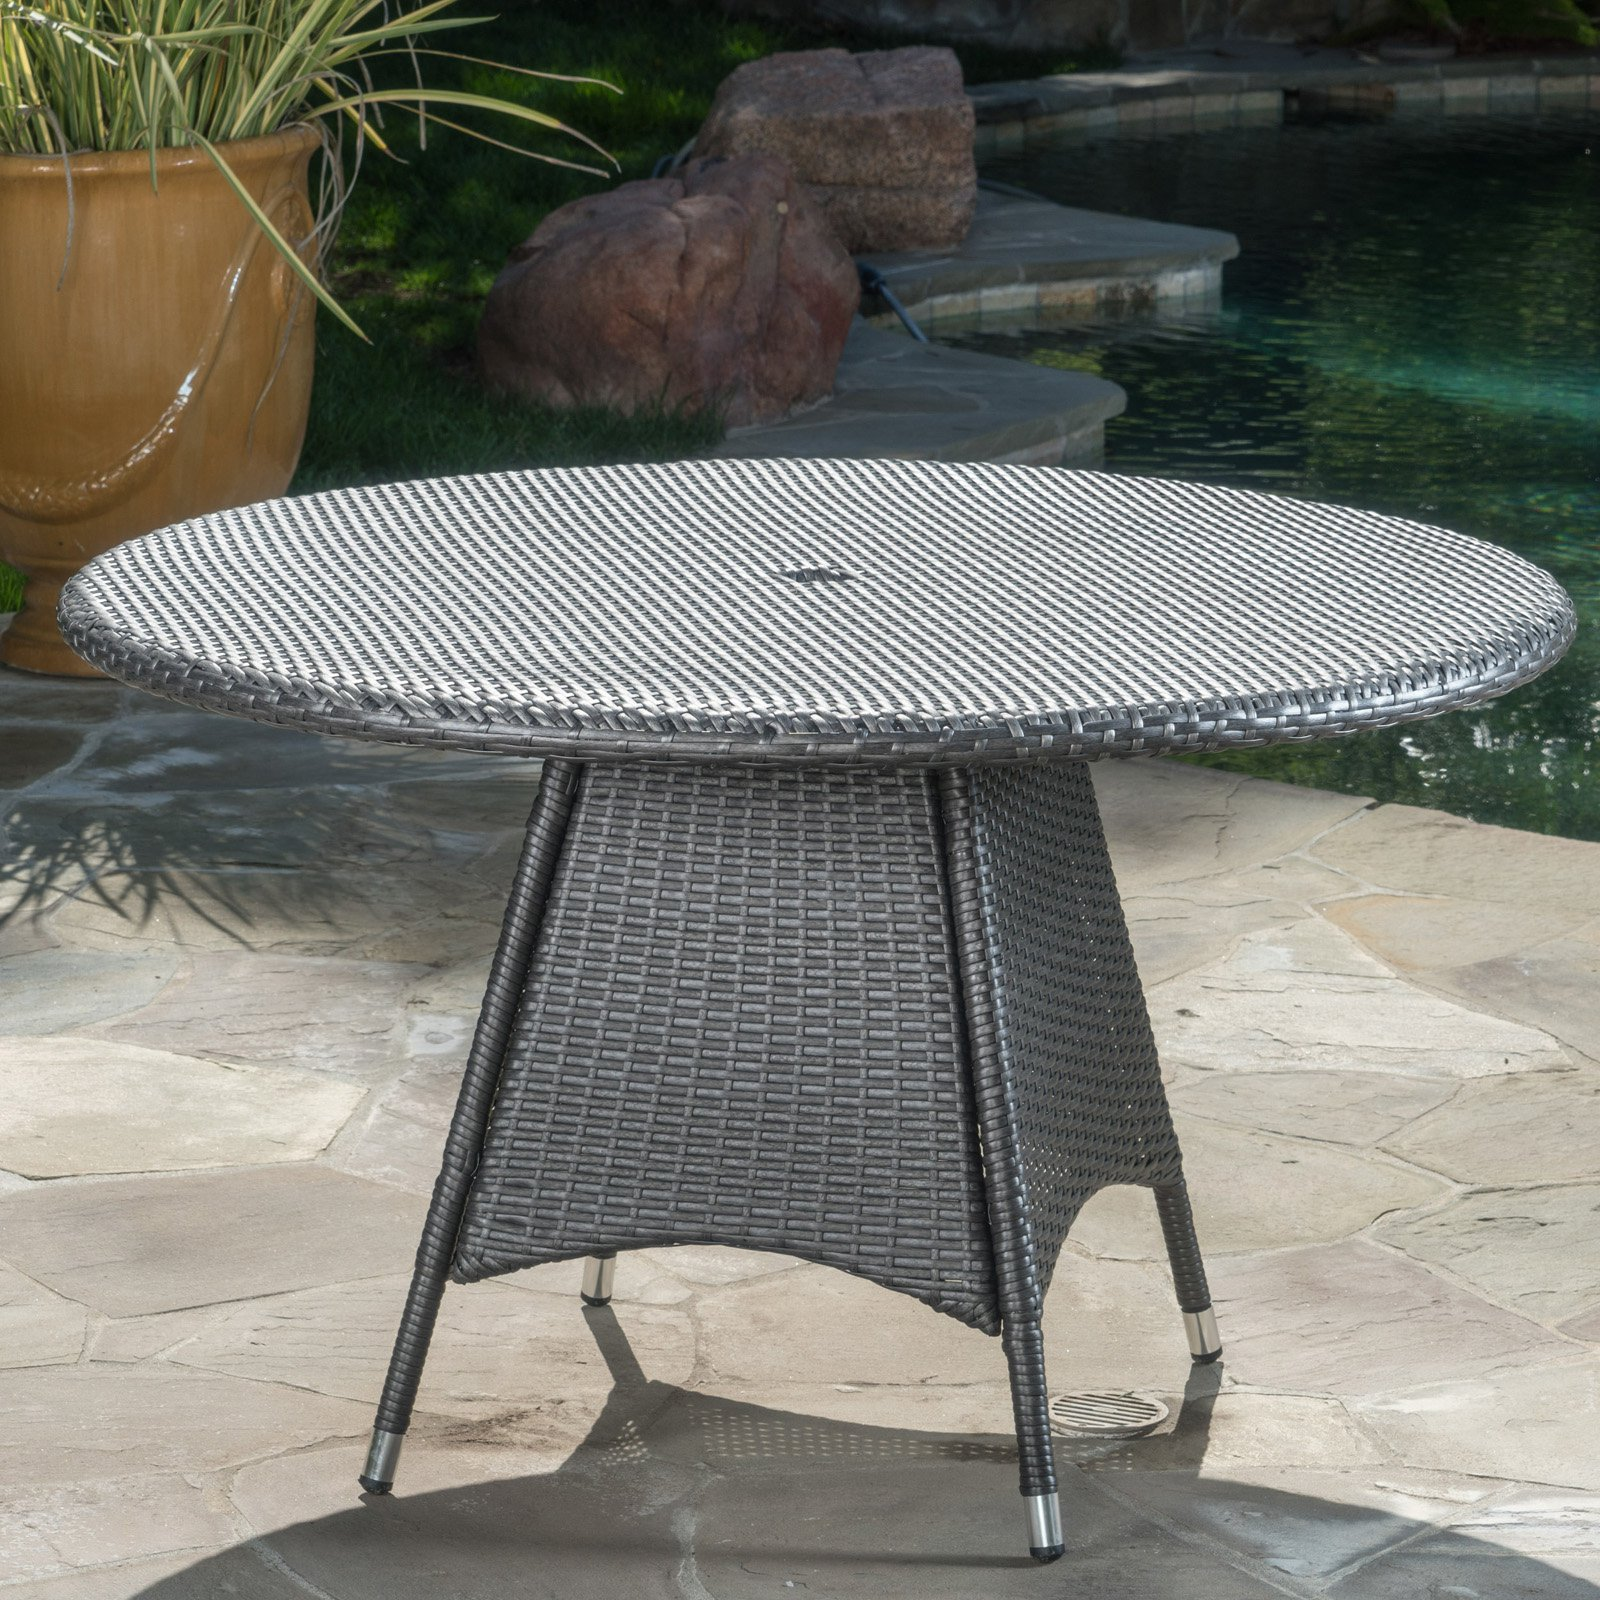 Outdoor Corsica Wicker Round Patio Dining Table Patio Dining Set